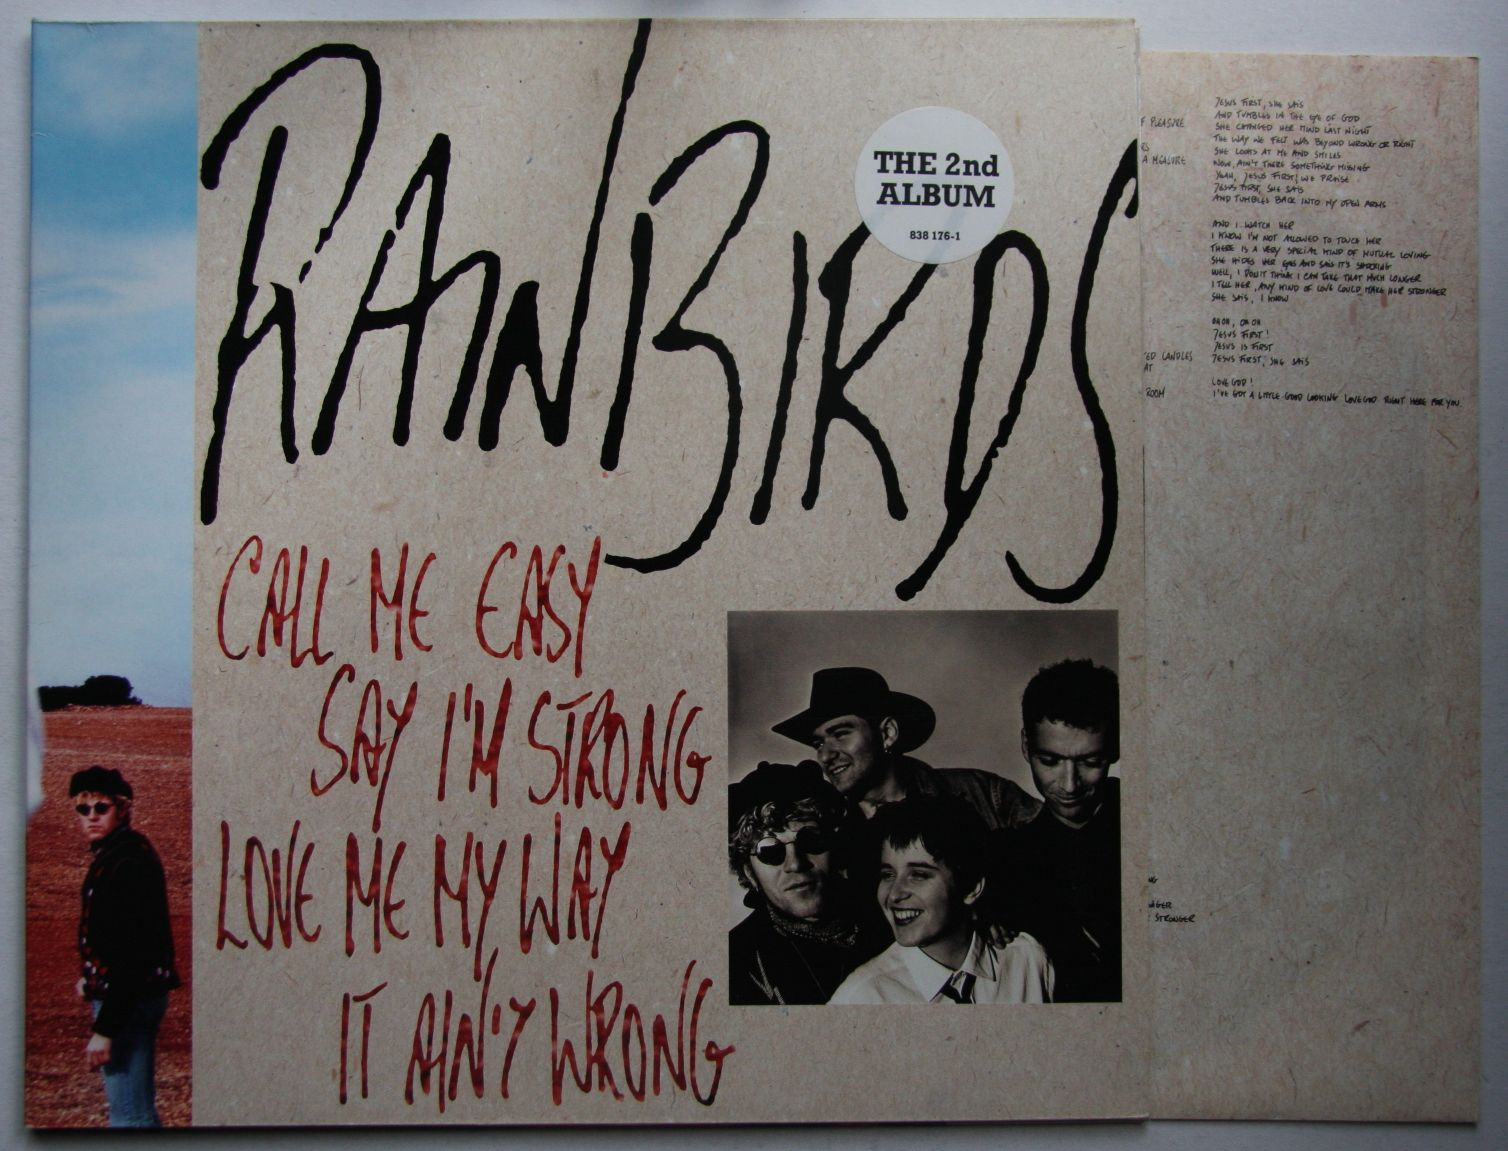 Call Me Easy Say I'm Strong Love Me My Way It Ain't Wrong - Rainbirds